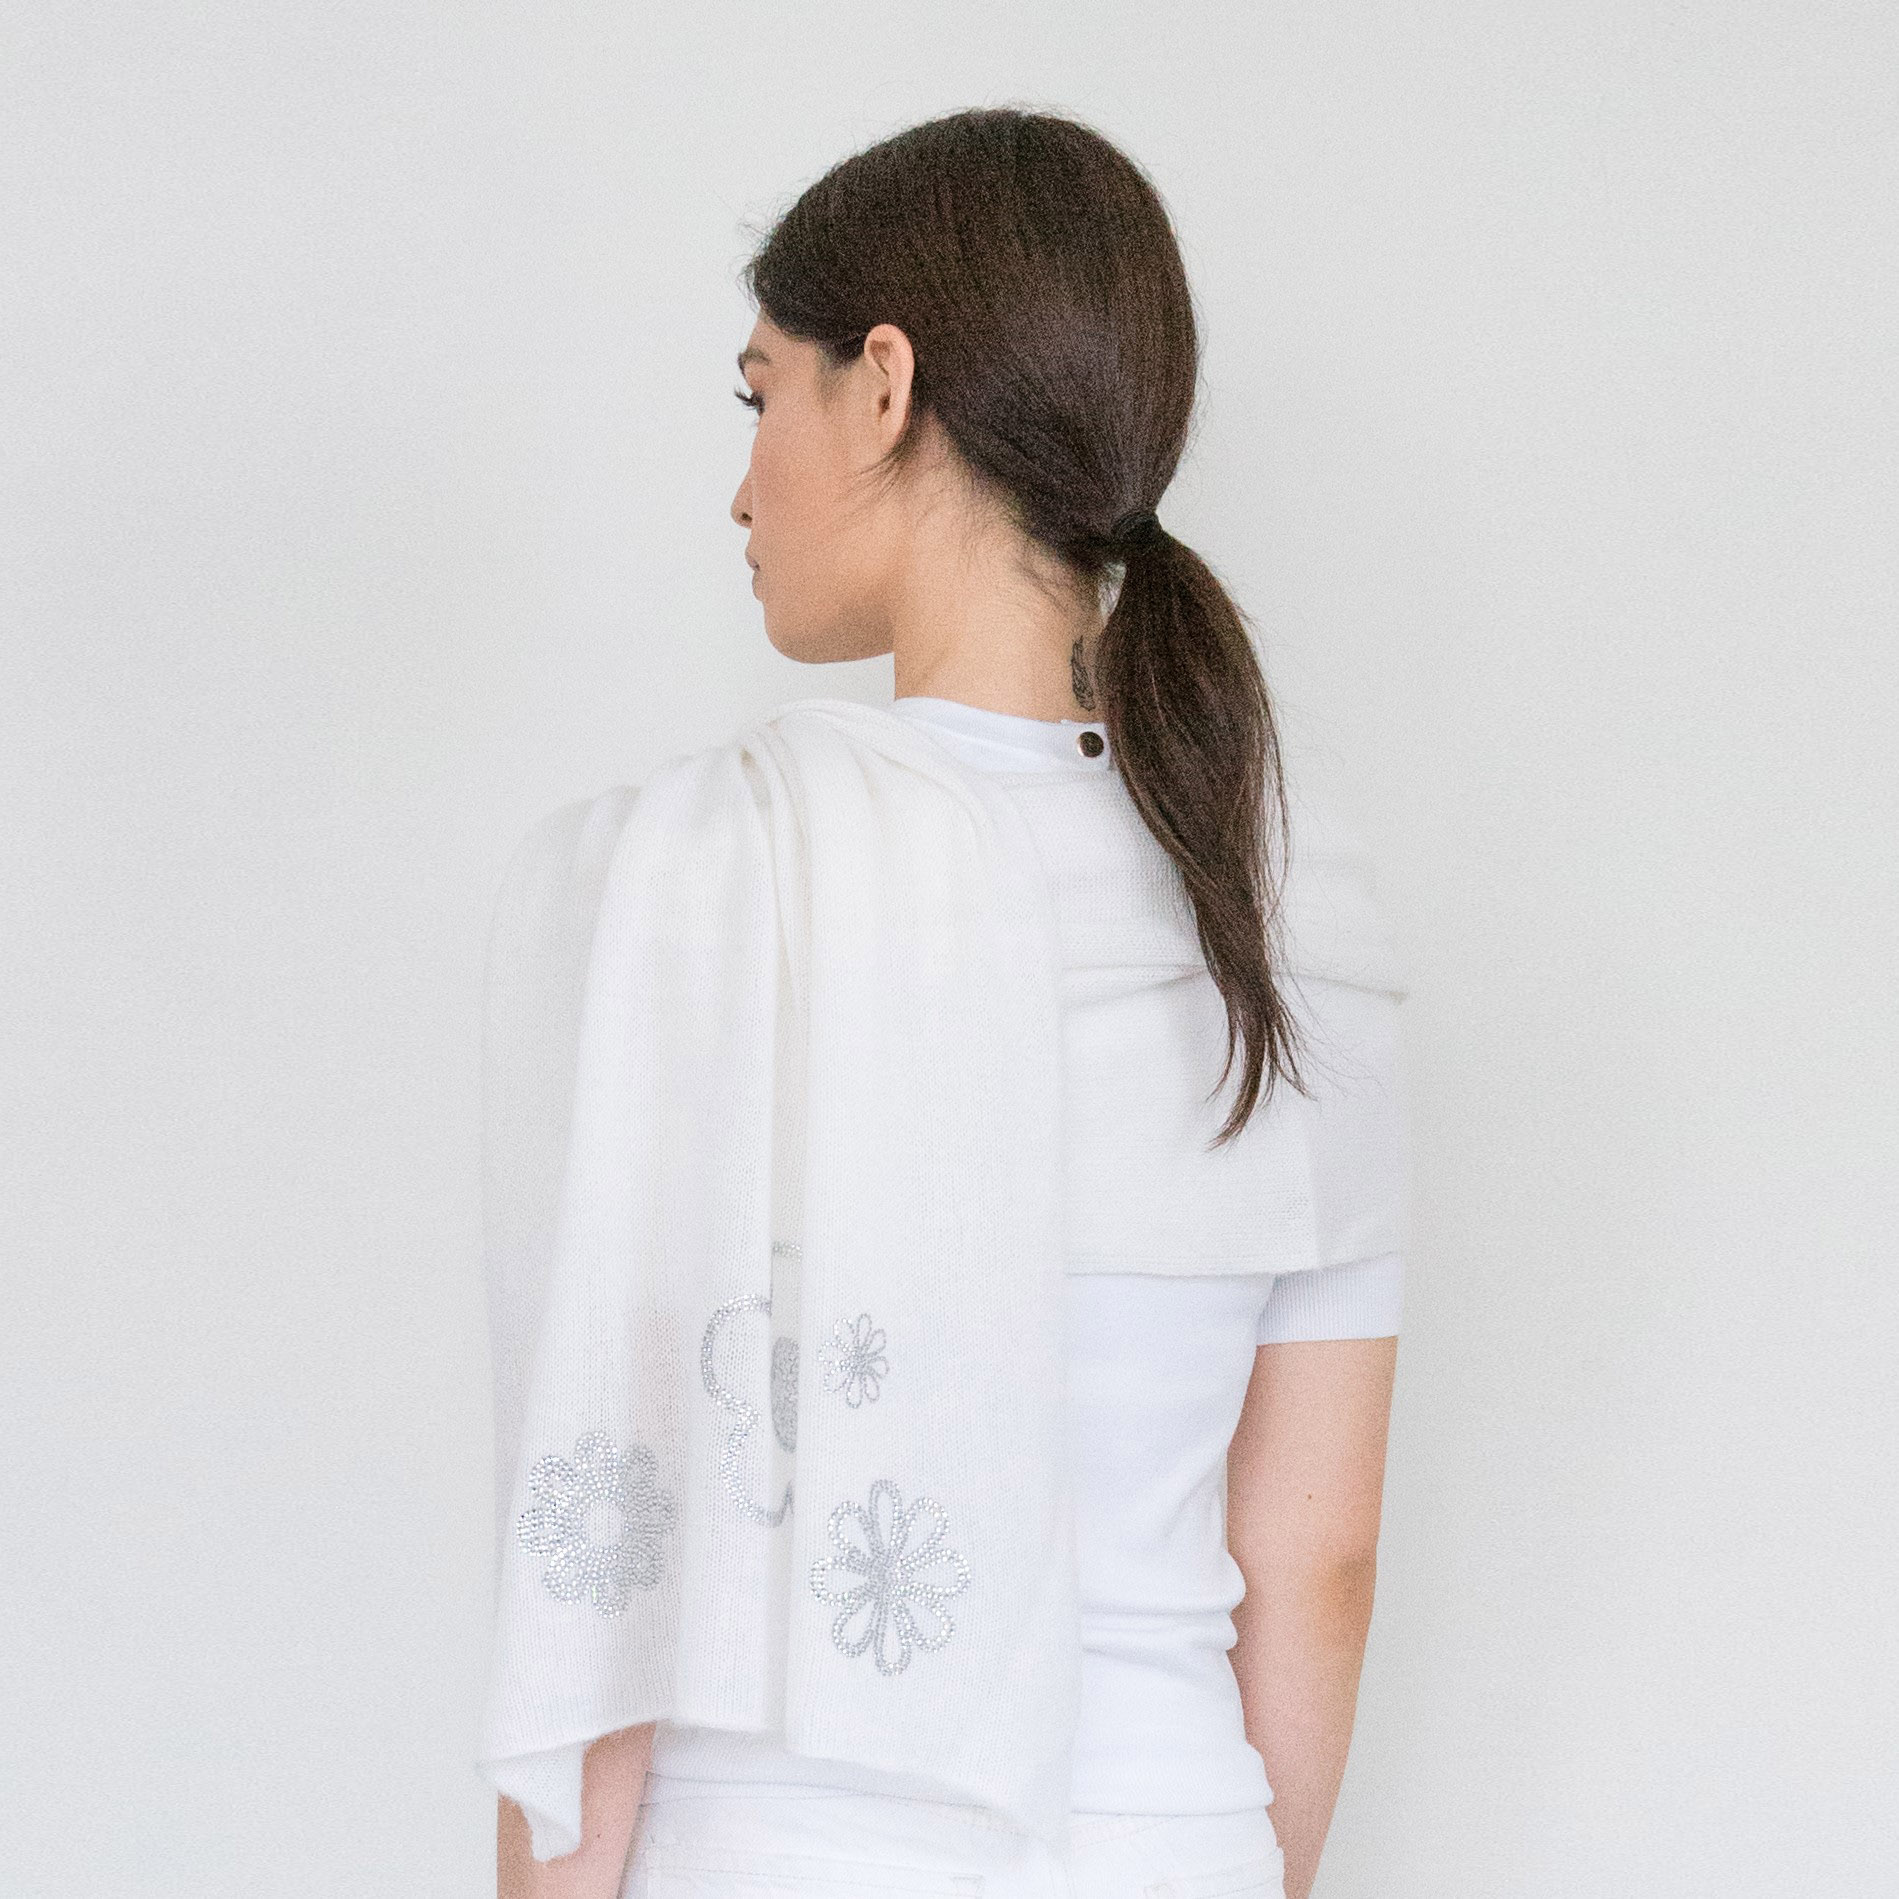 - Scattered Crystal Flowers on Bleached White Cashmere